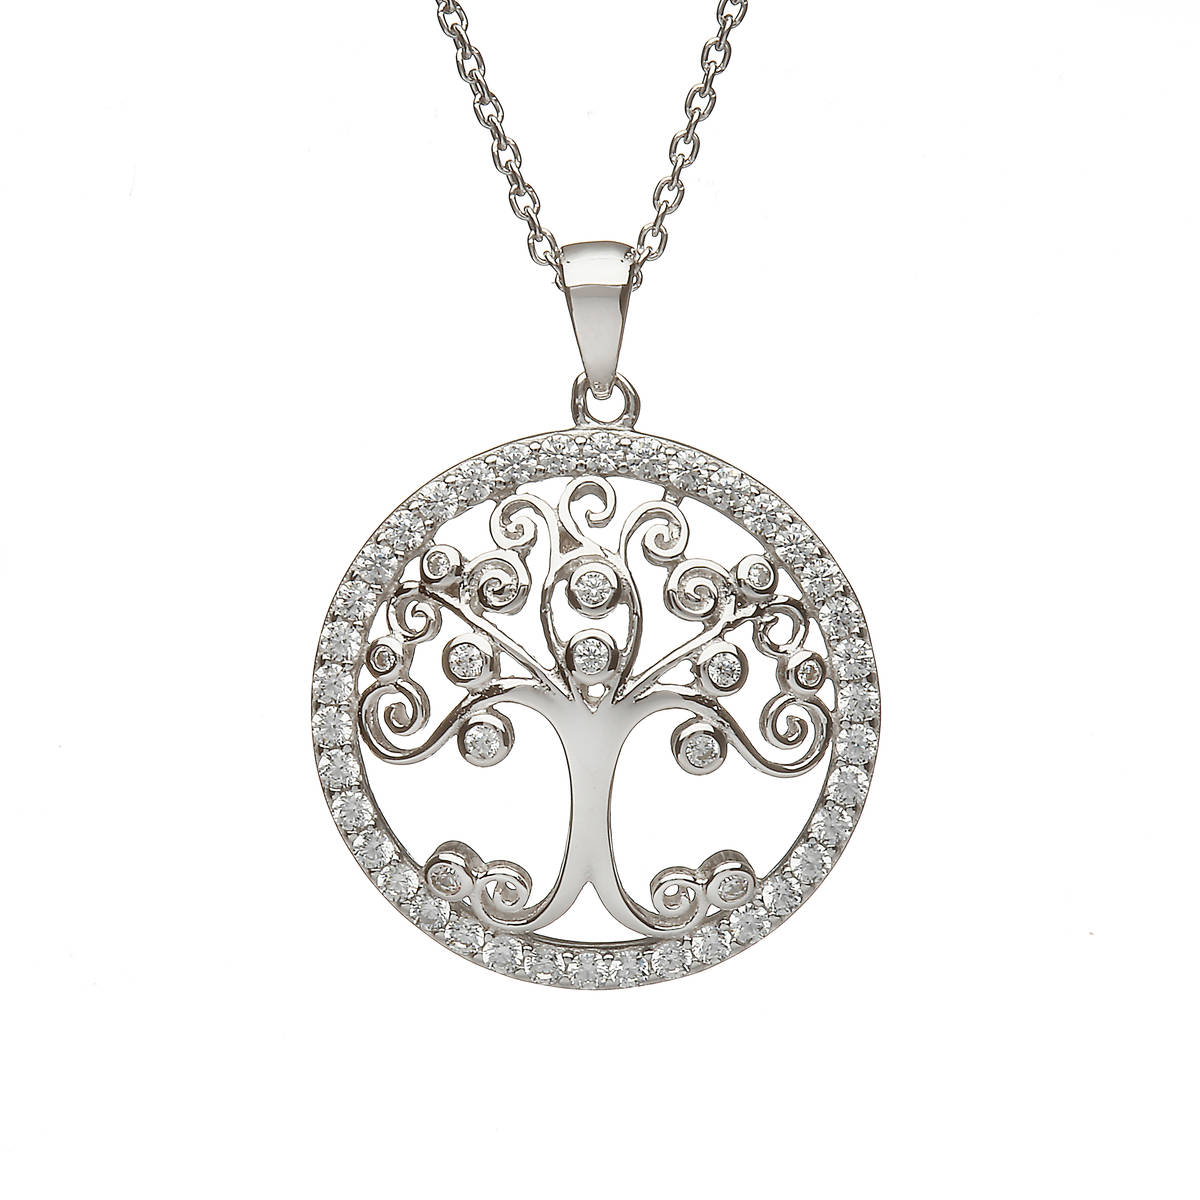 Sterling Silver Circular Tree Of Life Design Pendant Set With Cubic Zirconias